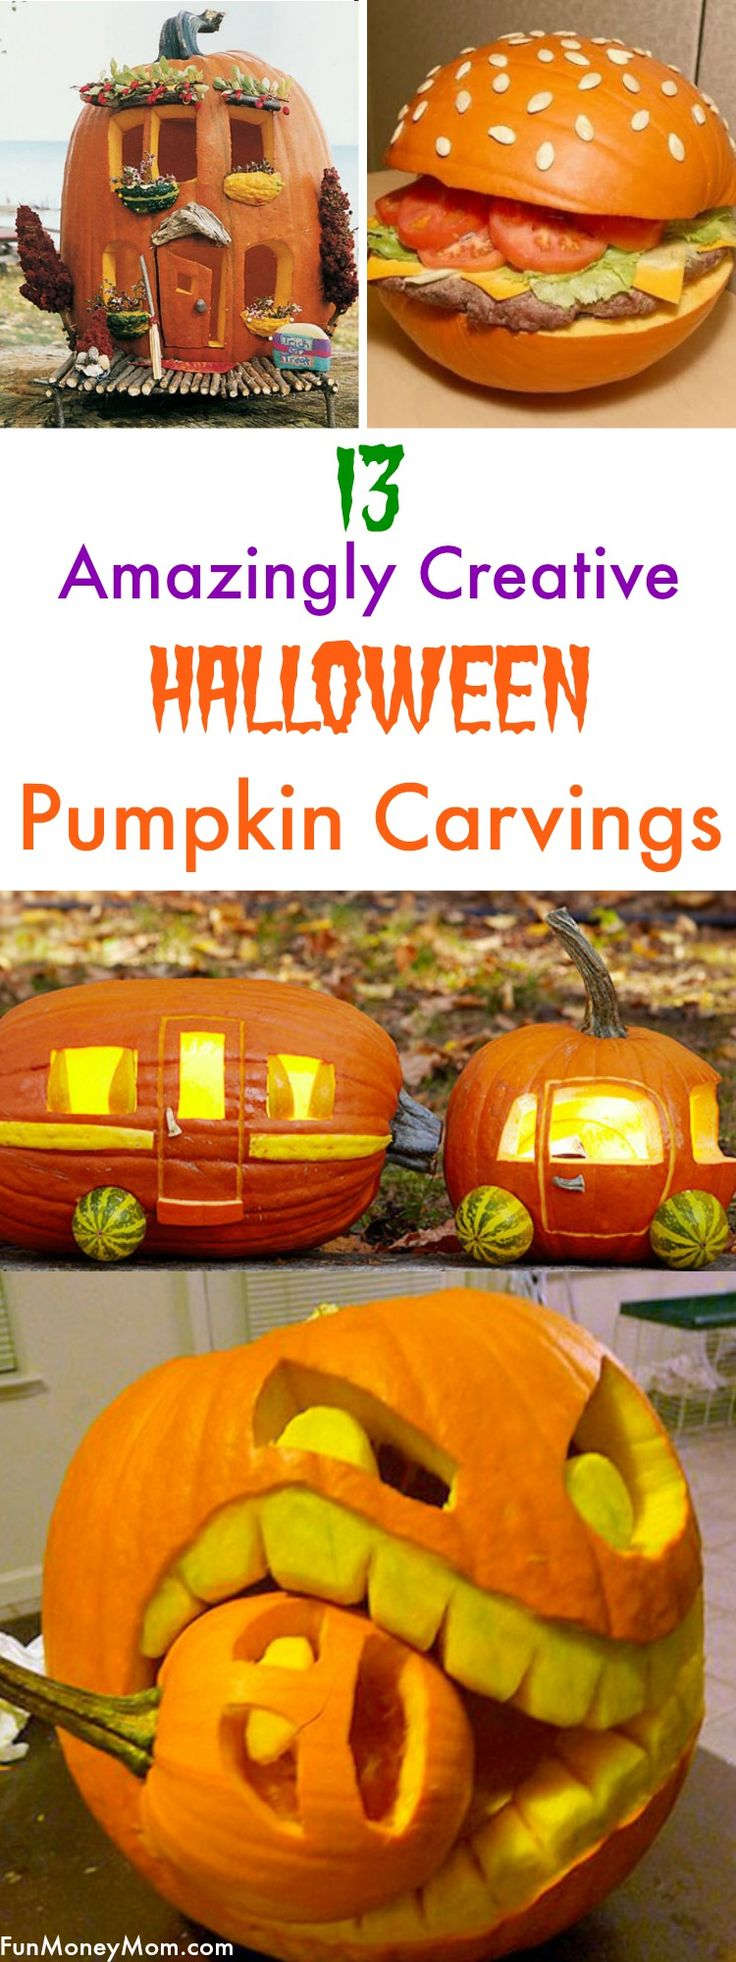 Best 25 halloween pumpkin carvings ideas on pinterest for The coolest pumpkin carvings